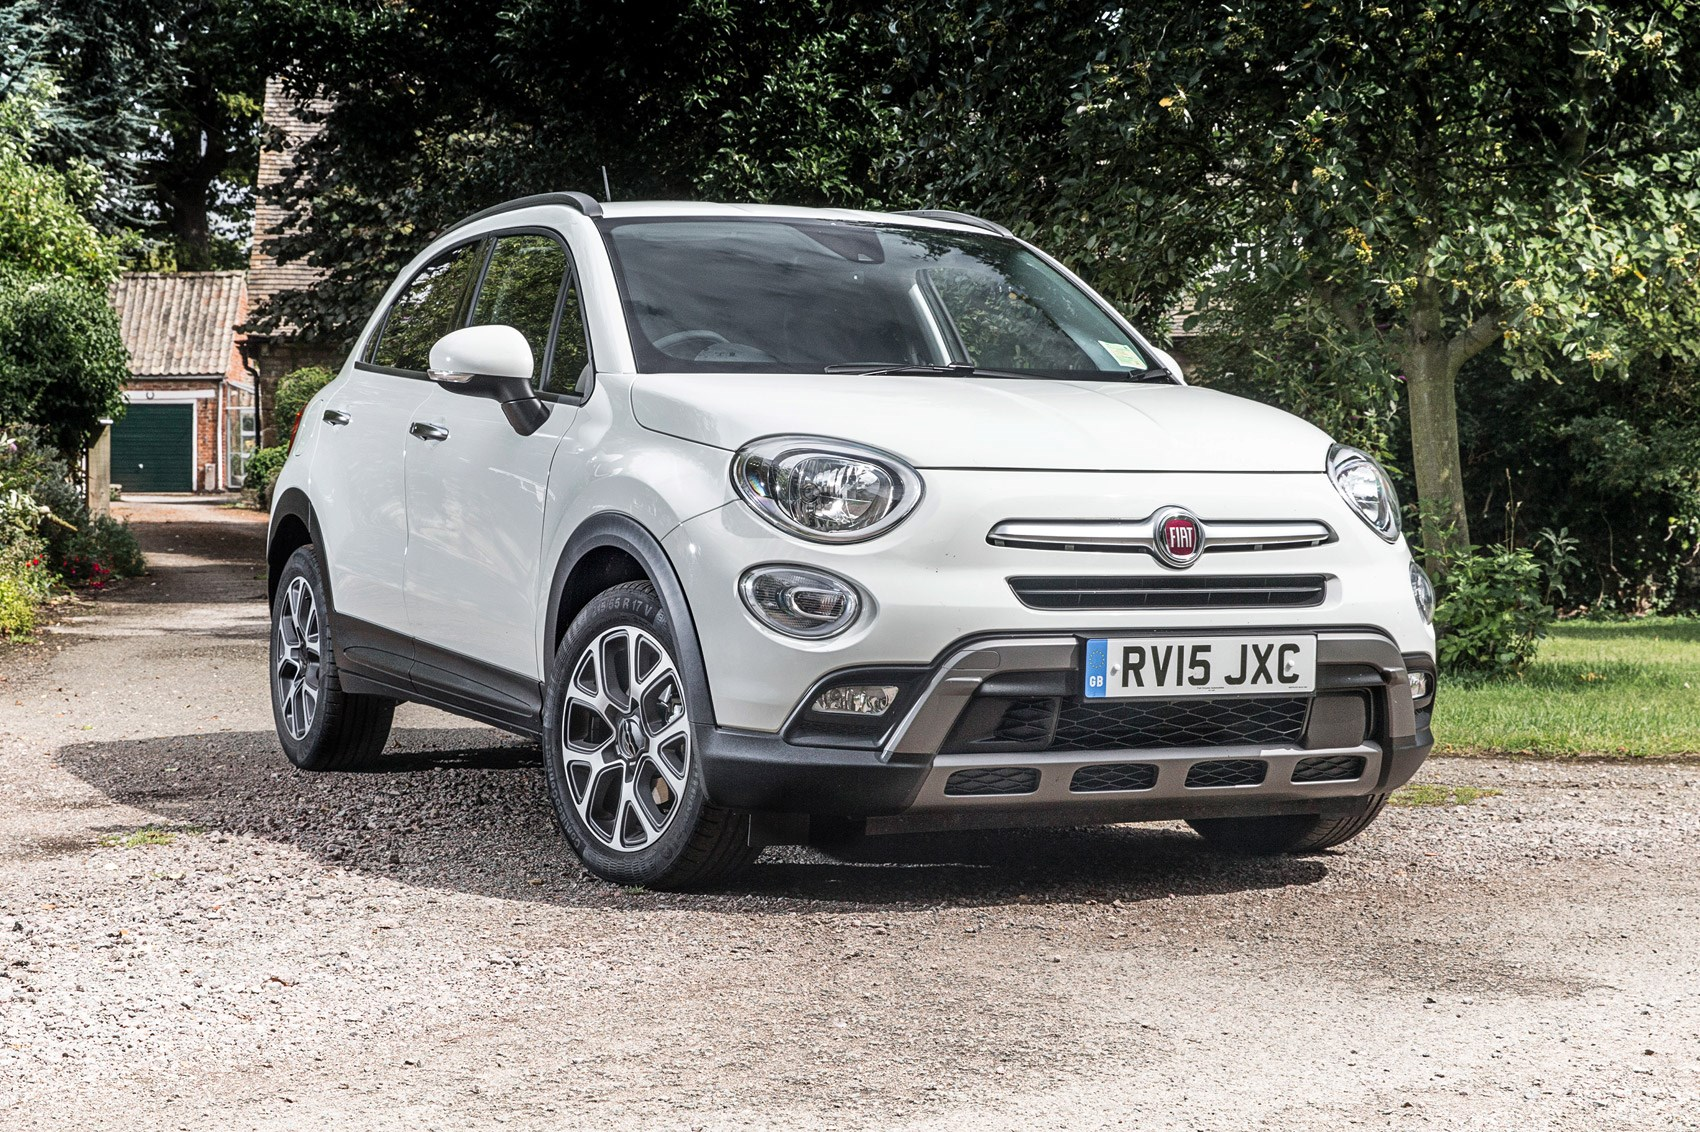 fiat 500x 4x4 fiat 500x 4x4 review 2015 parkers fiat 500x 4x4 cross fiat 500x 2 0 multijet. Black Bedroom Furniture Sets. Home Design Ideas